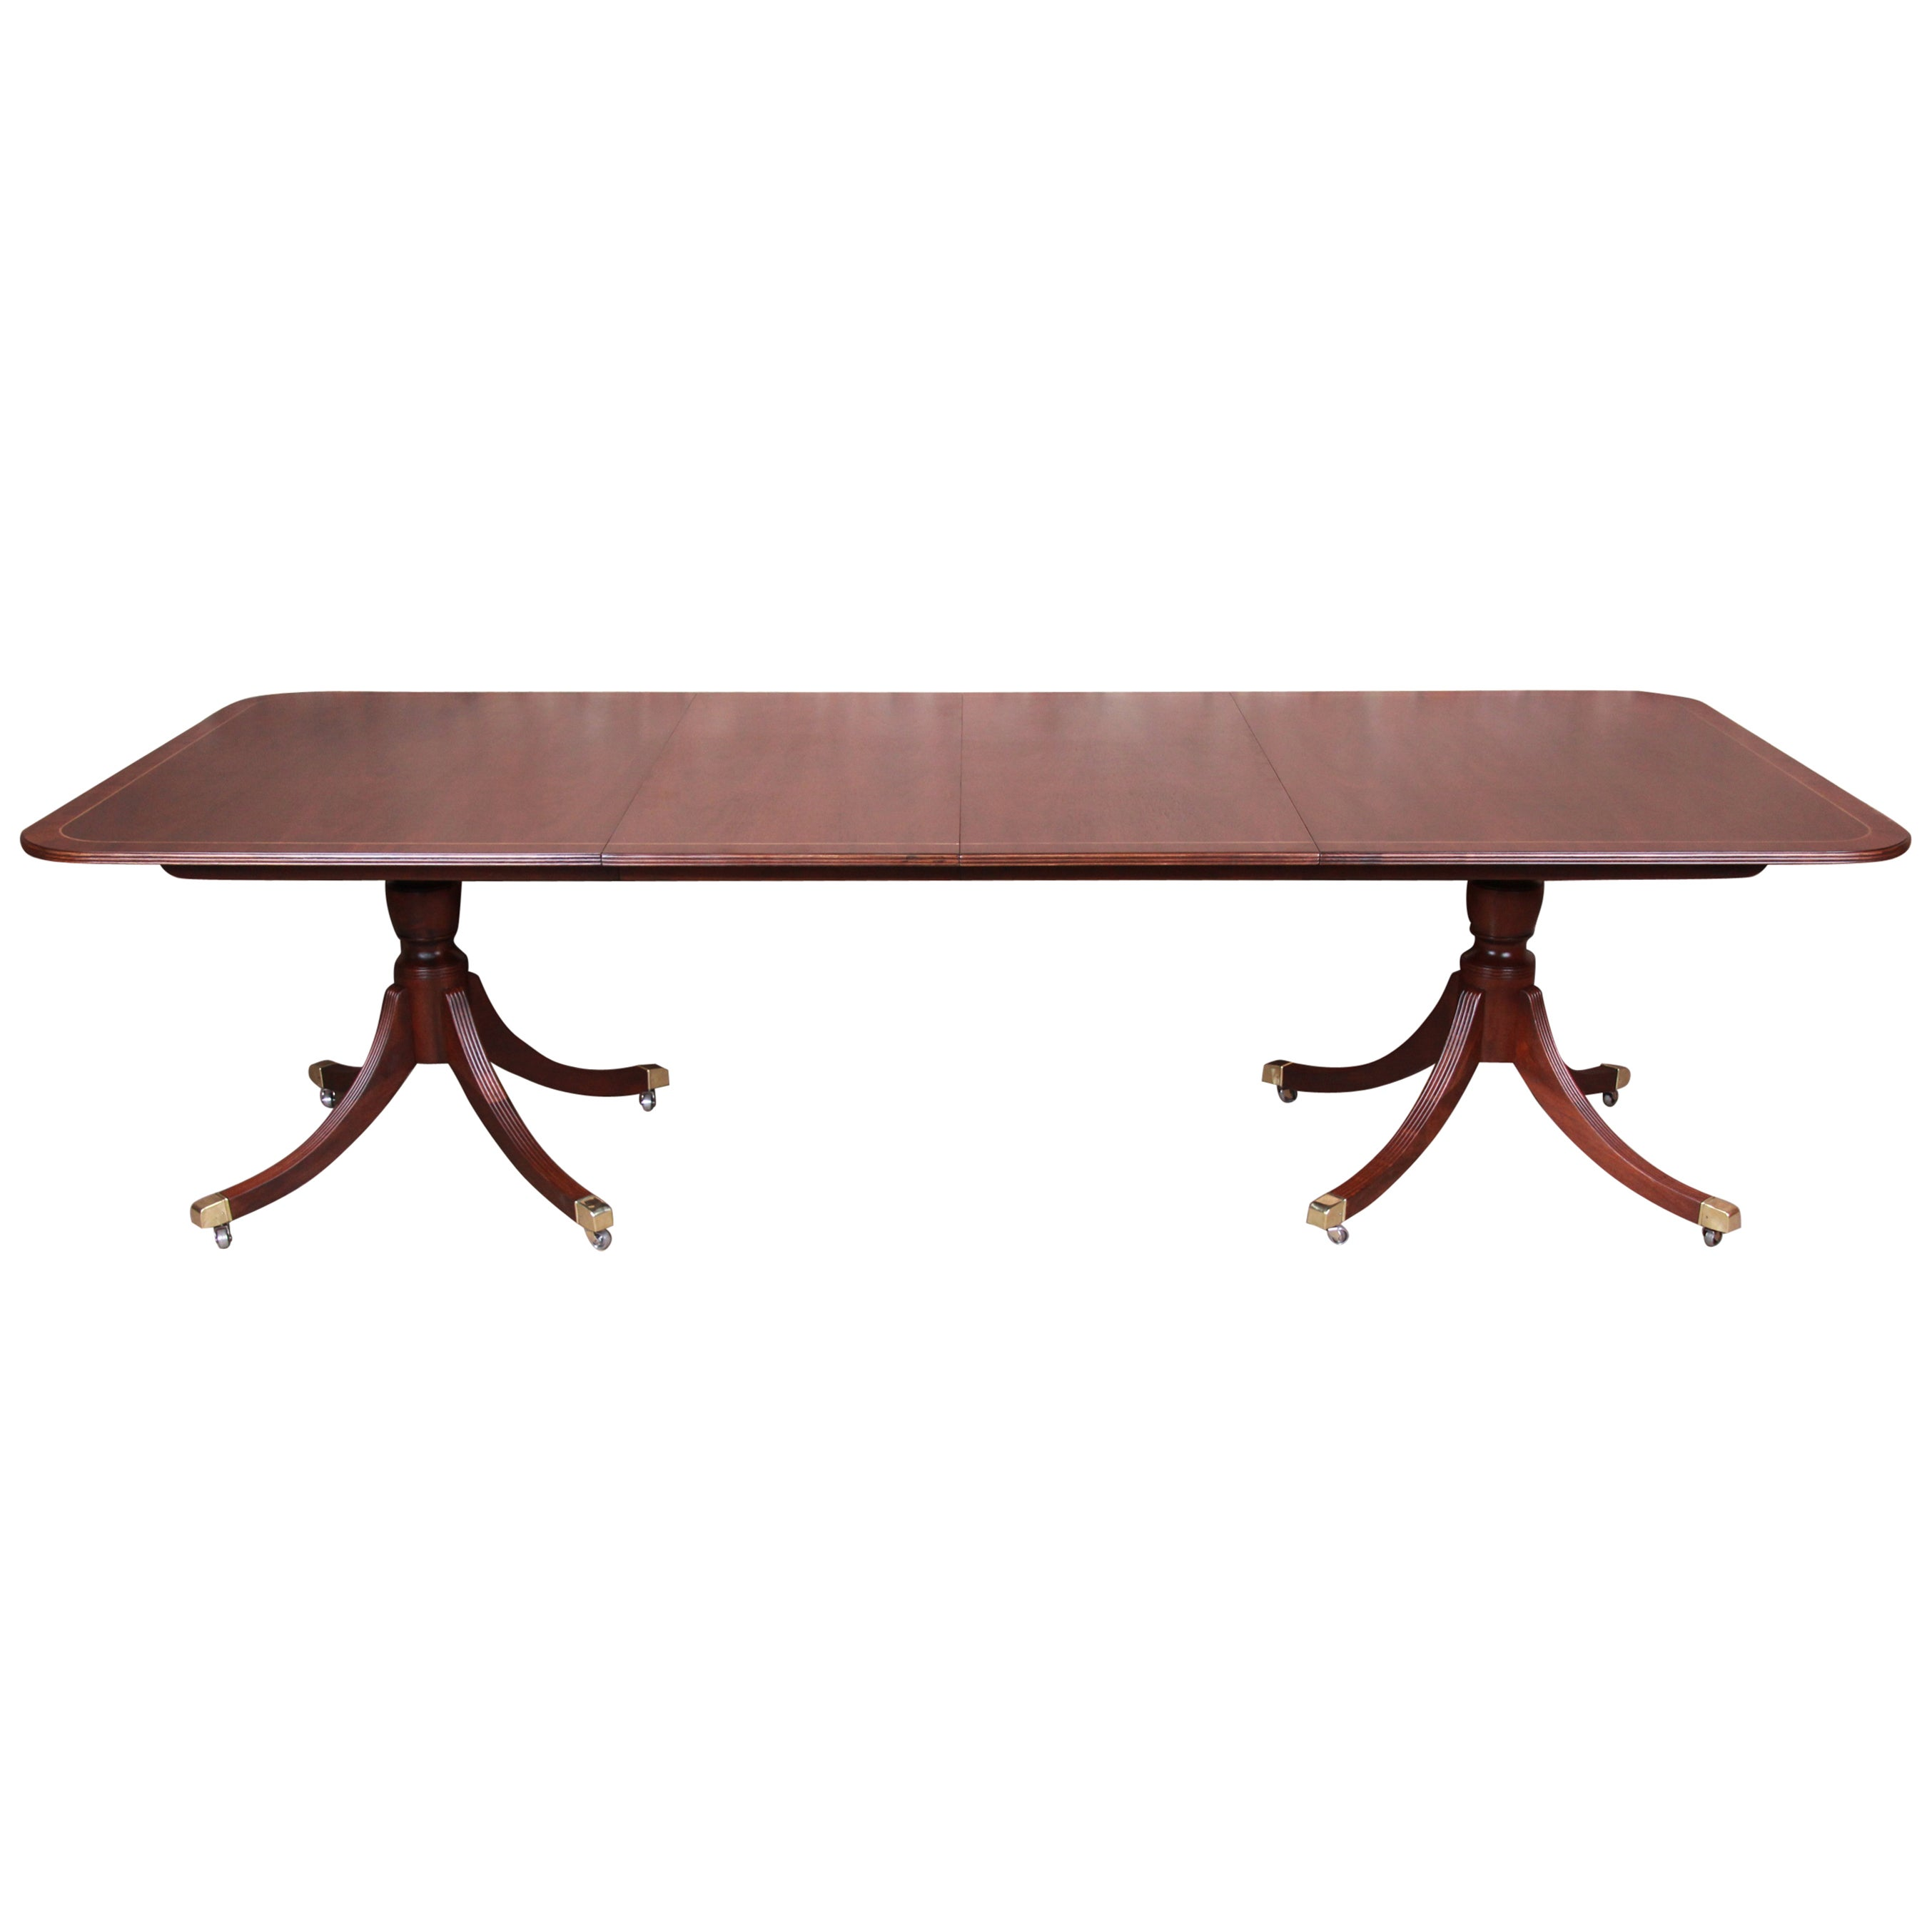 Baker Furniture Banded Mahogany Double Pedestal Dining Table, Newly Refinished